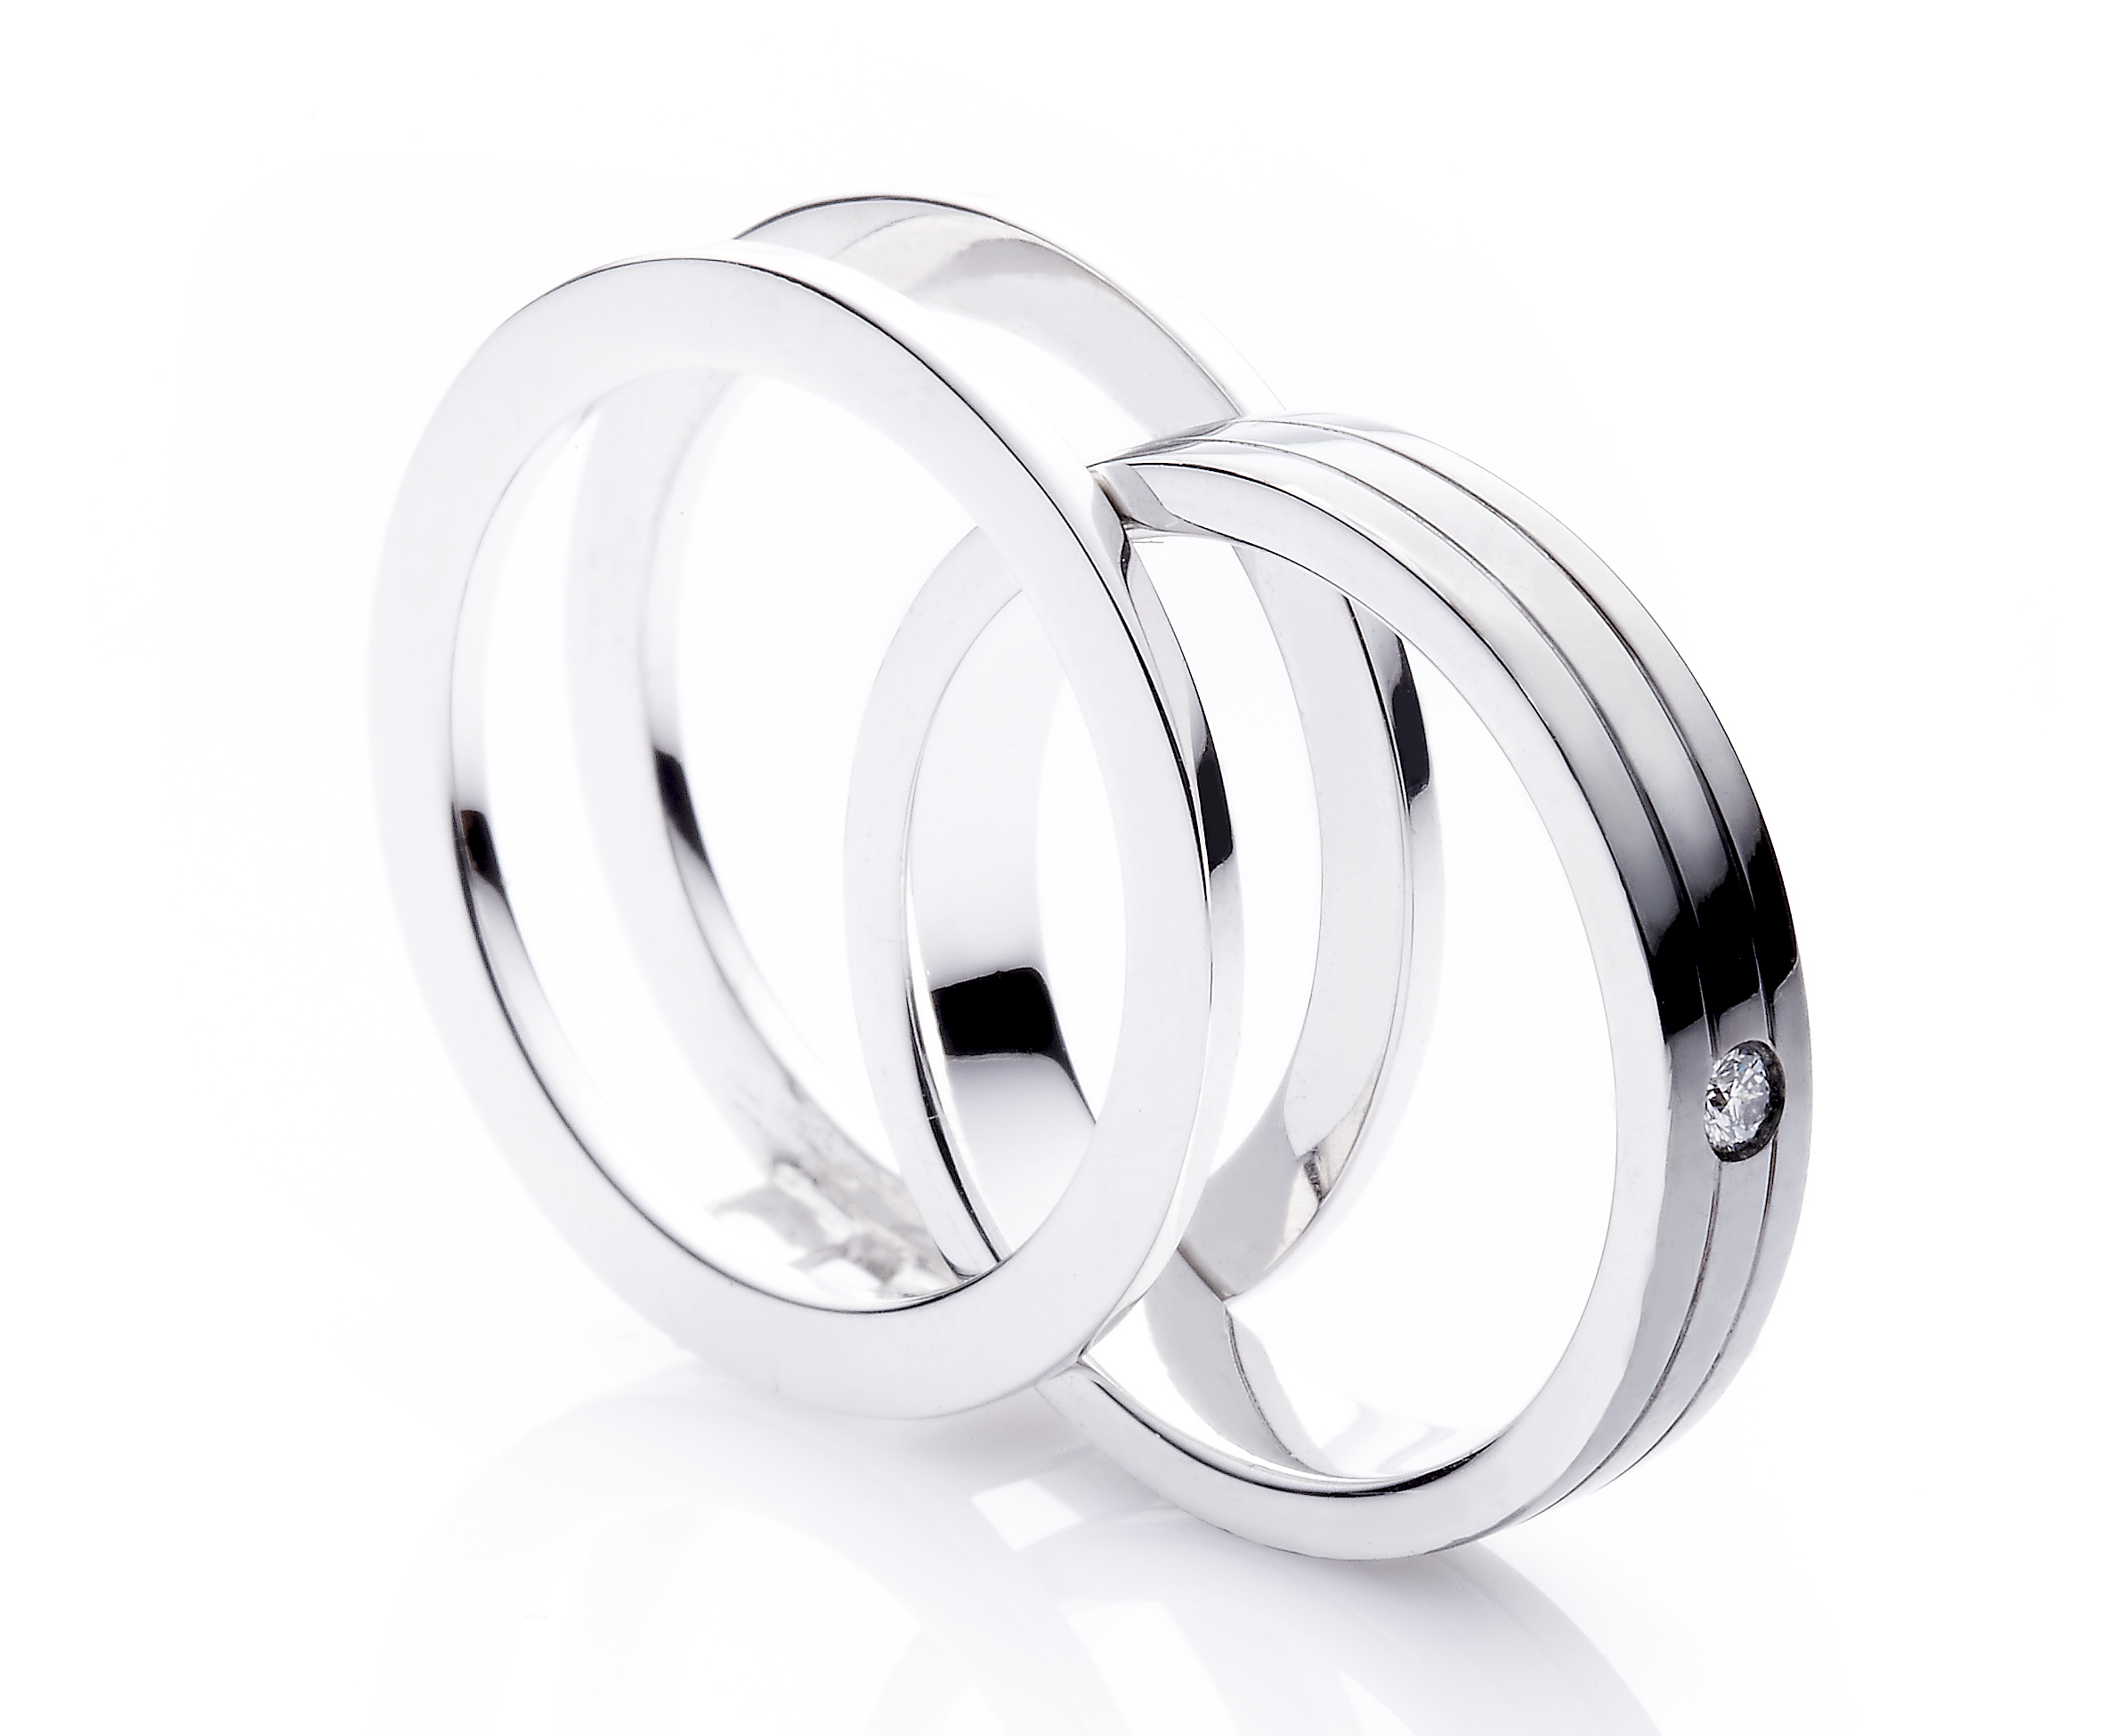 rings download free wedding groom iso photos republic photo